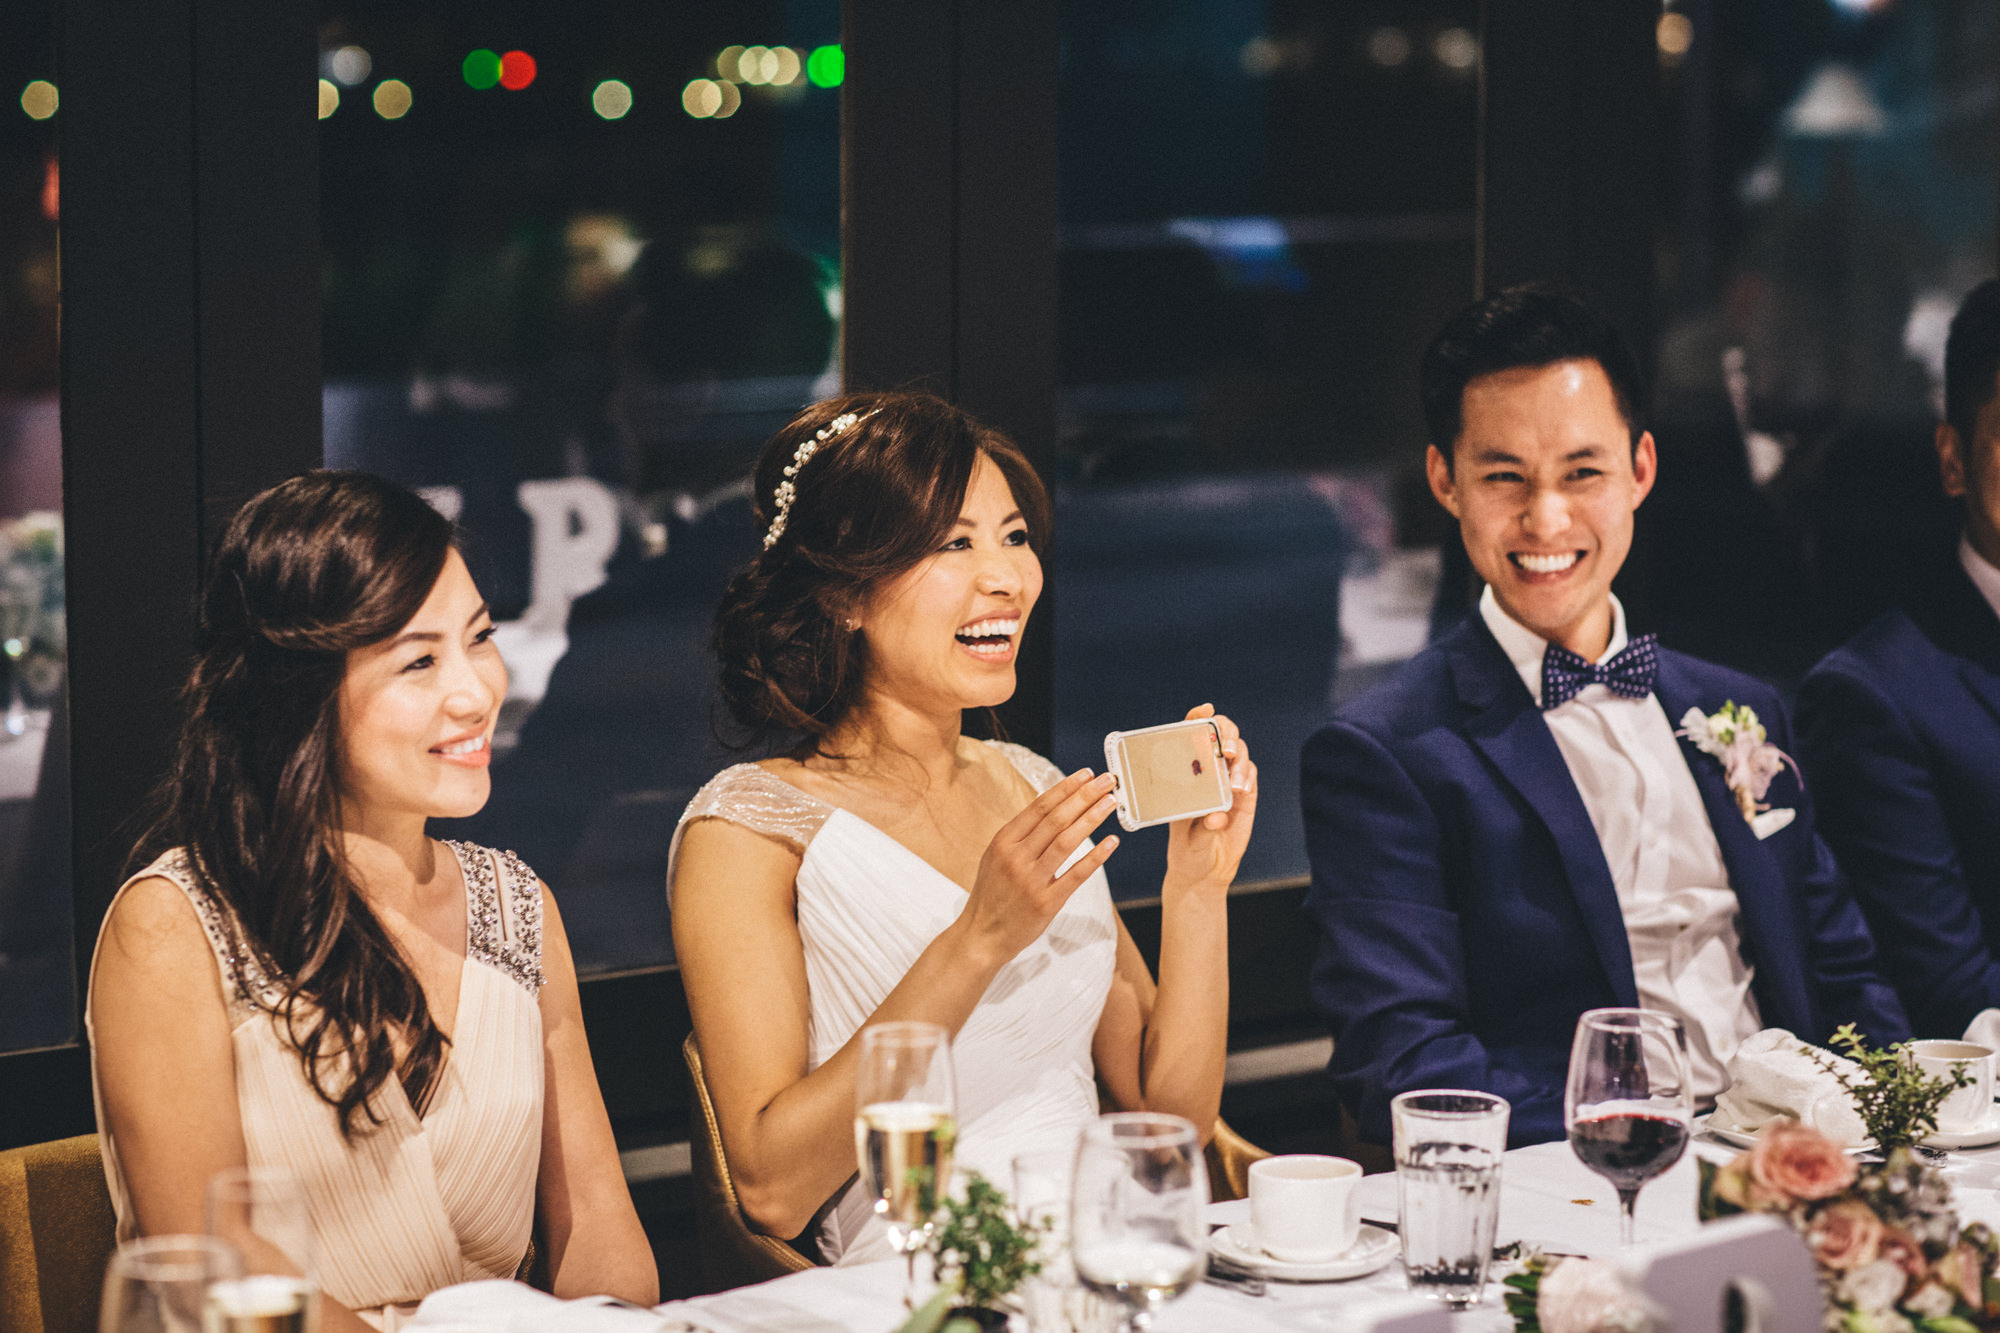 Allee & Rob - Singapore Wedding Photography (50 of 60).jpg